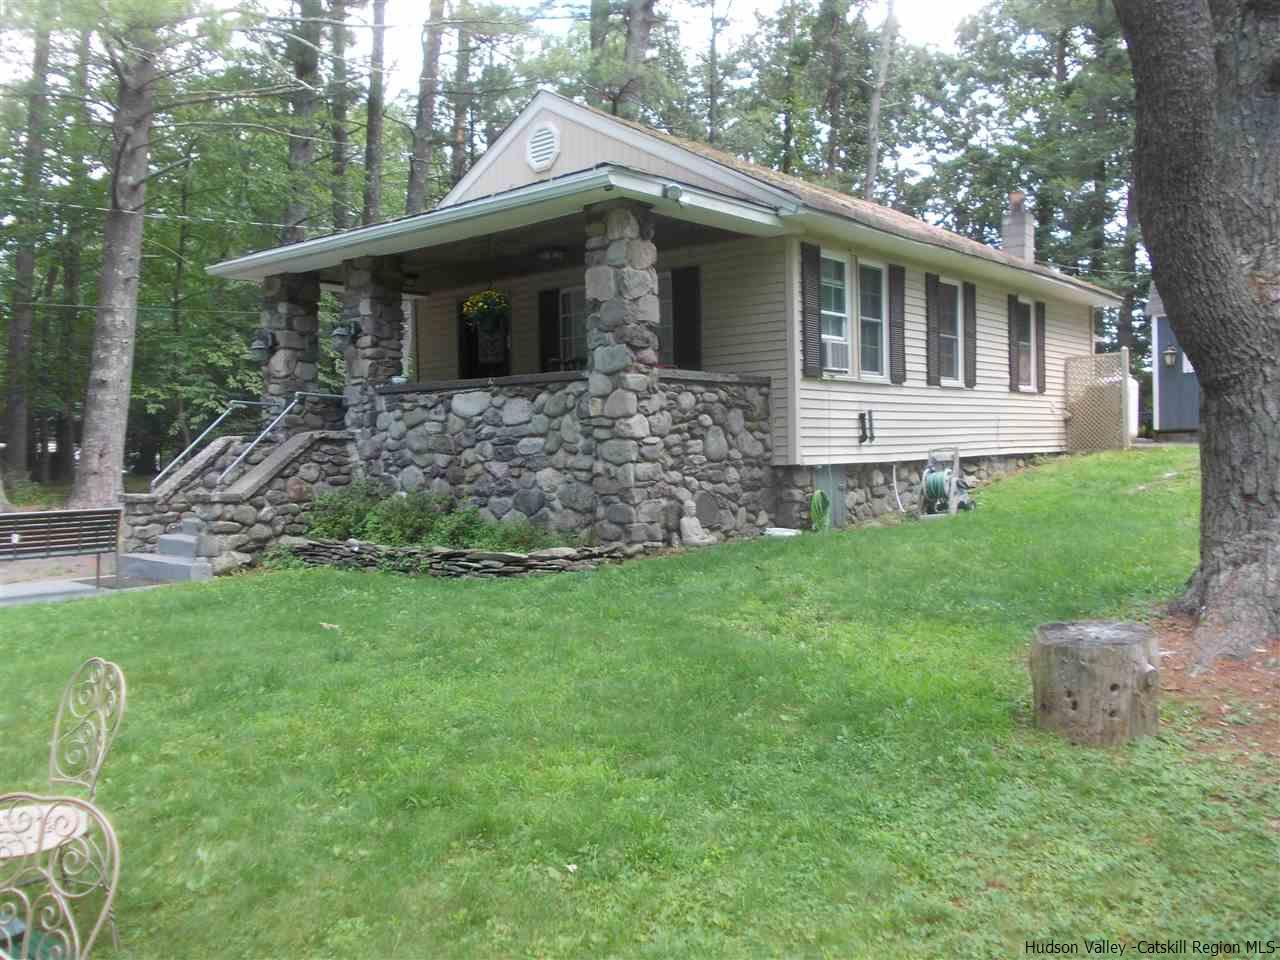 Single Family Home for Sale at 53 Pine Tree Lane 53 Pine Tree Lane Saugerties, New York 12477 United States